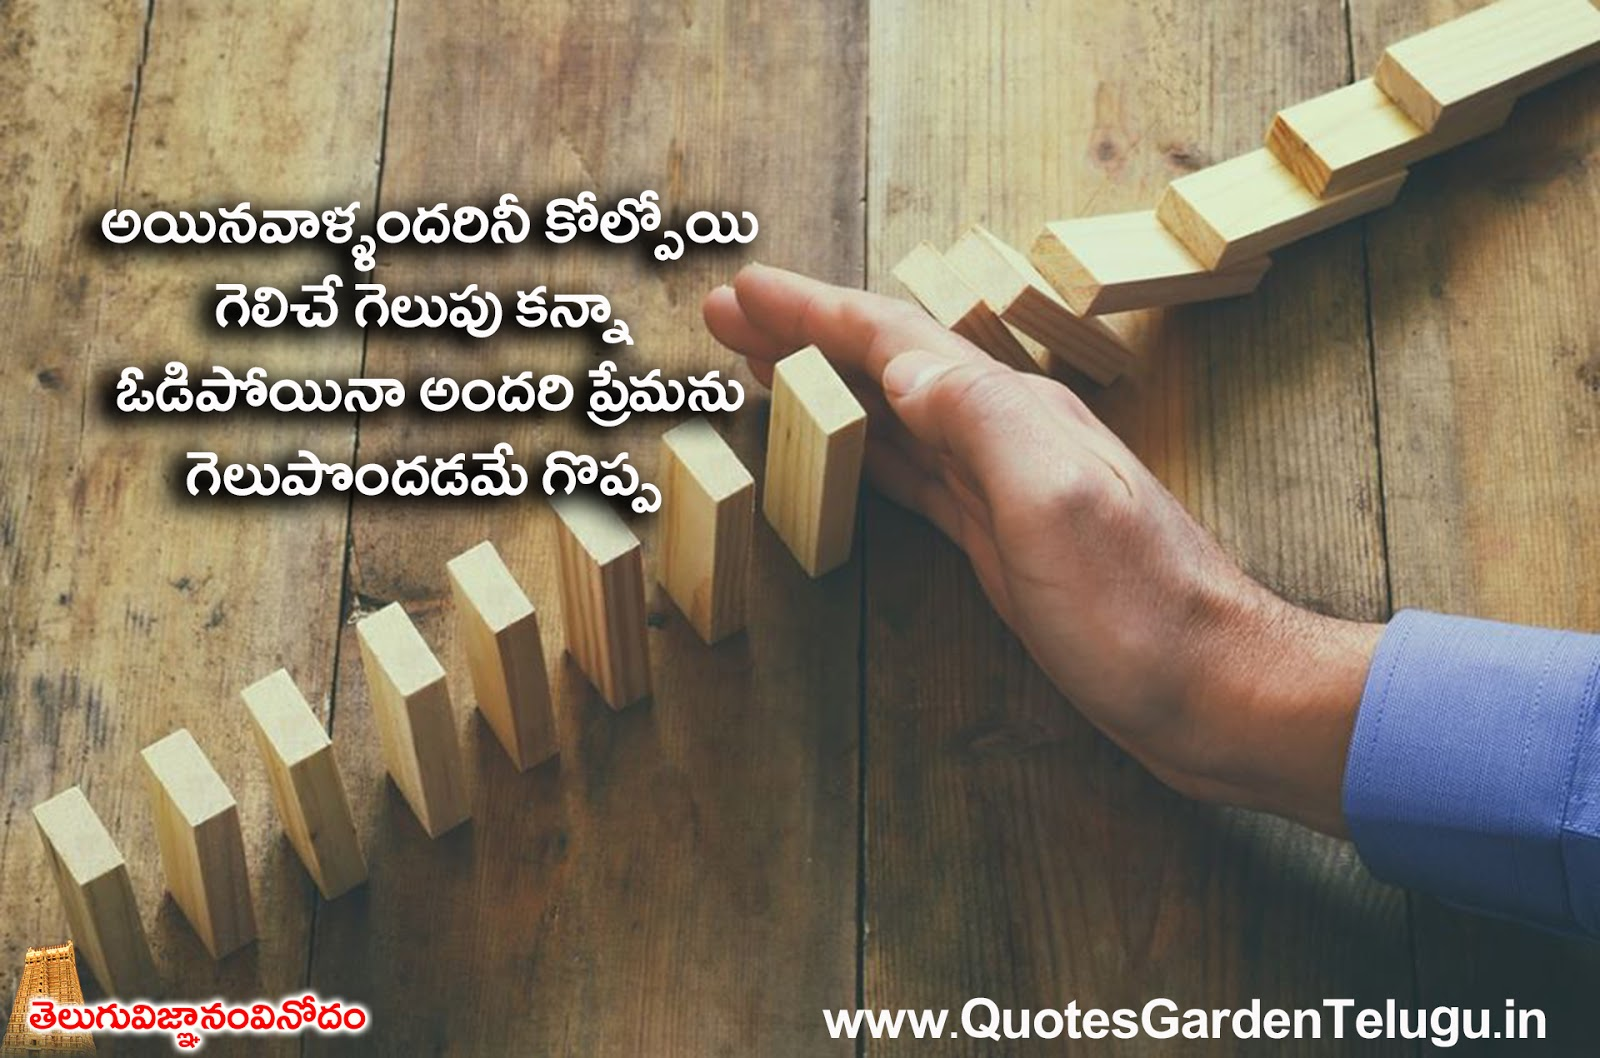 Latest heart touching quotes in telugu images